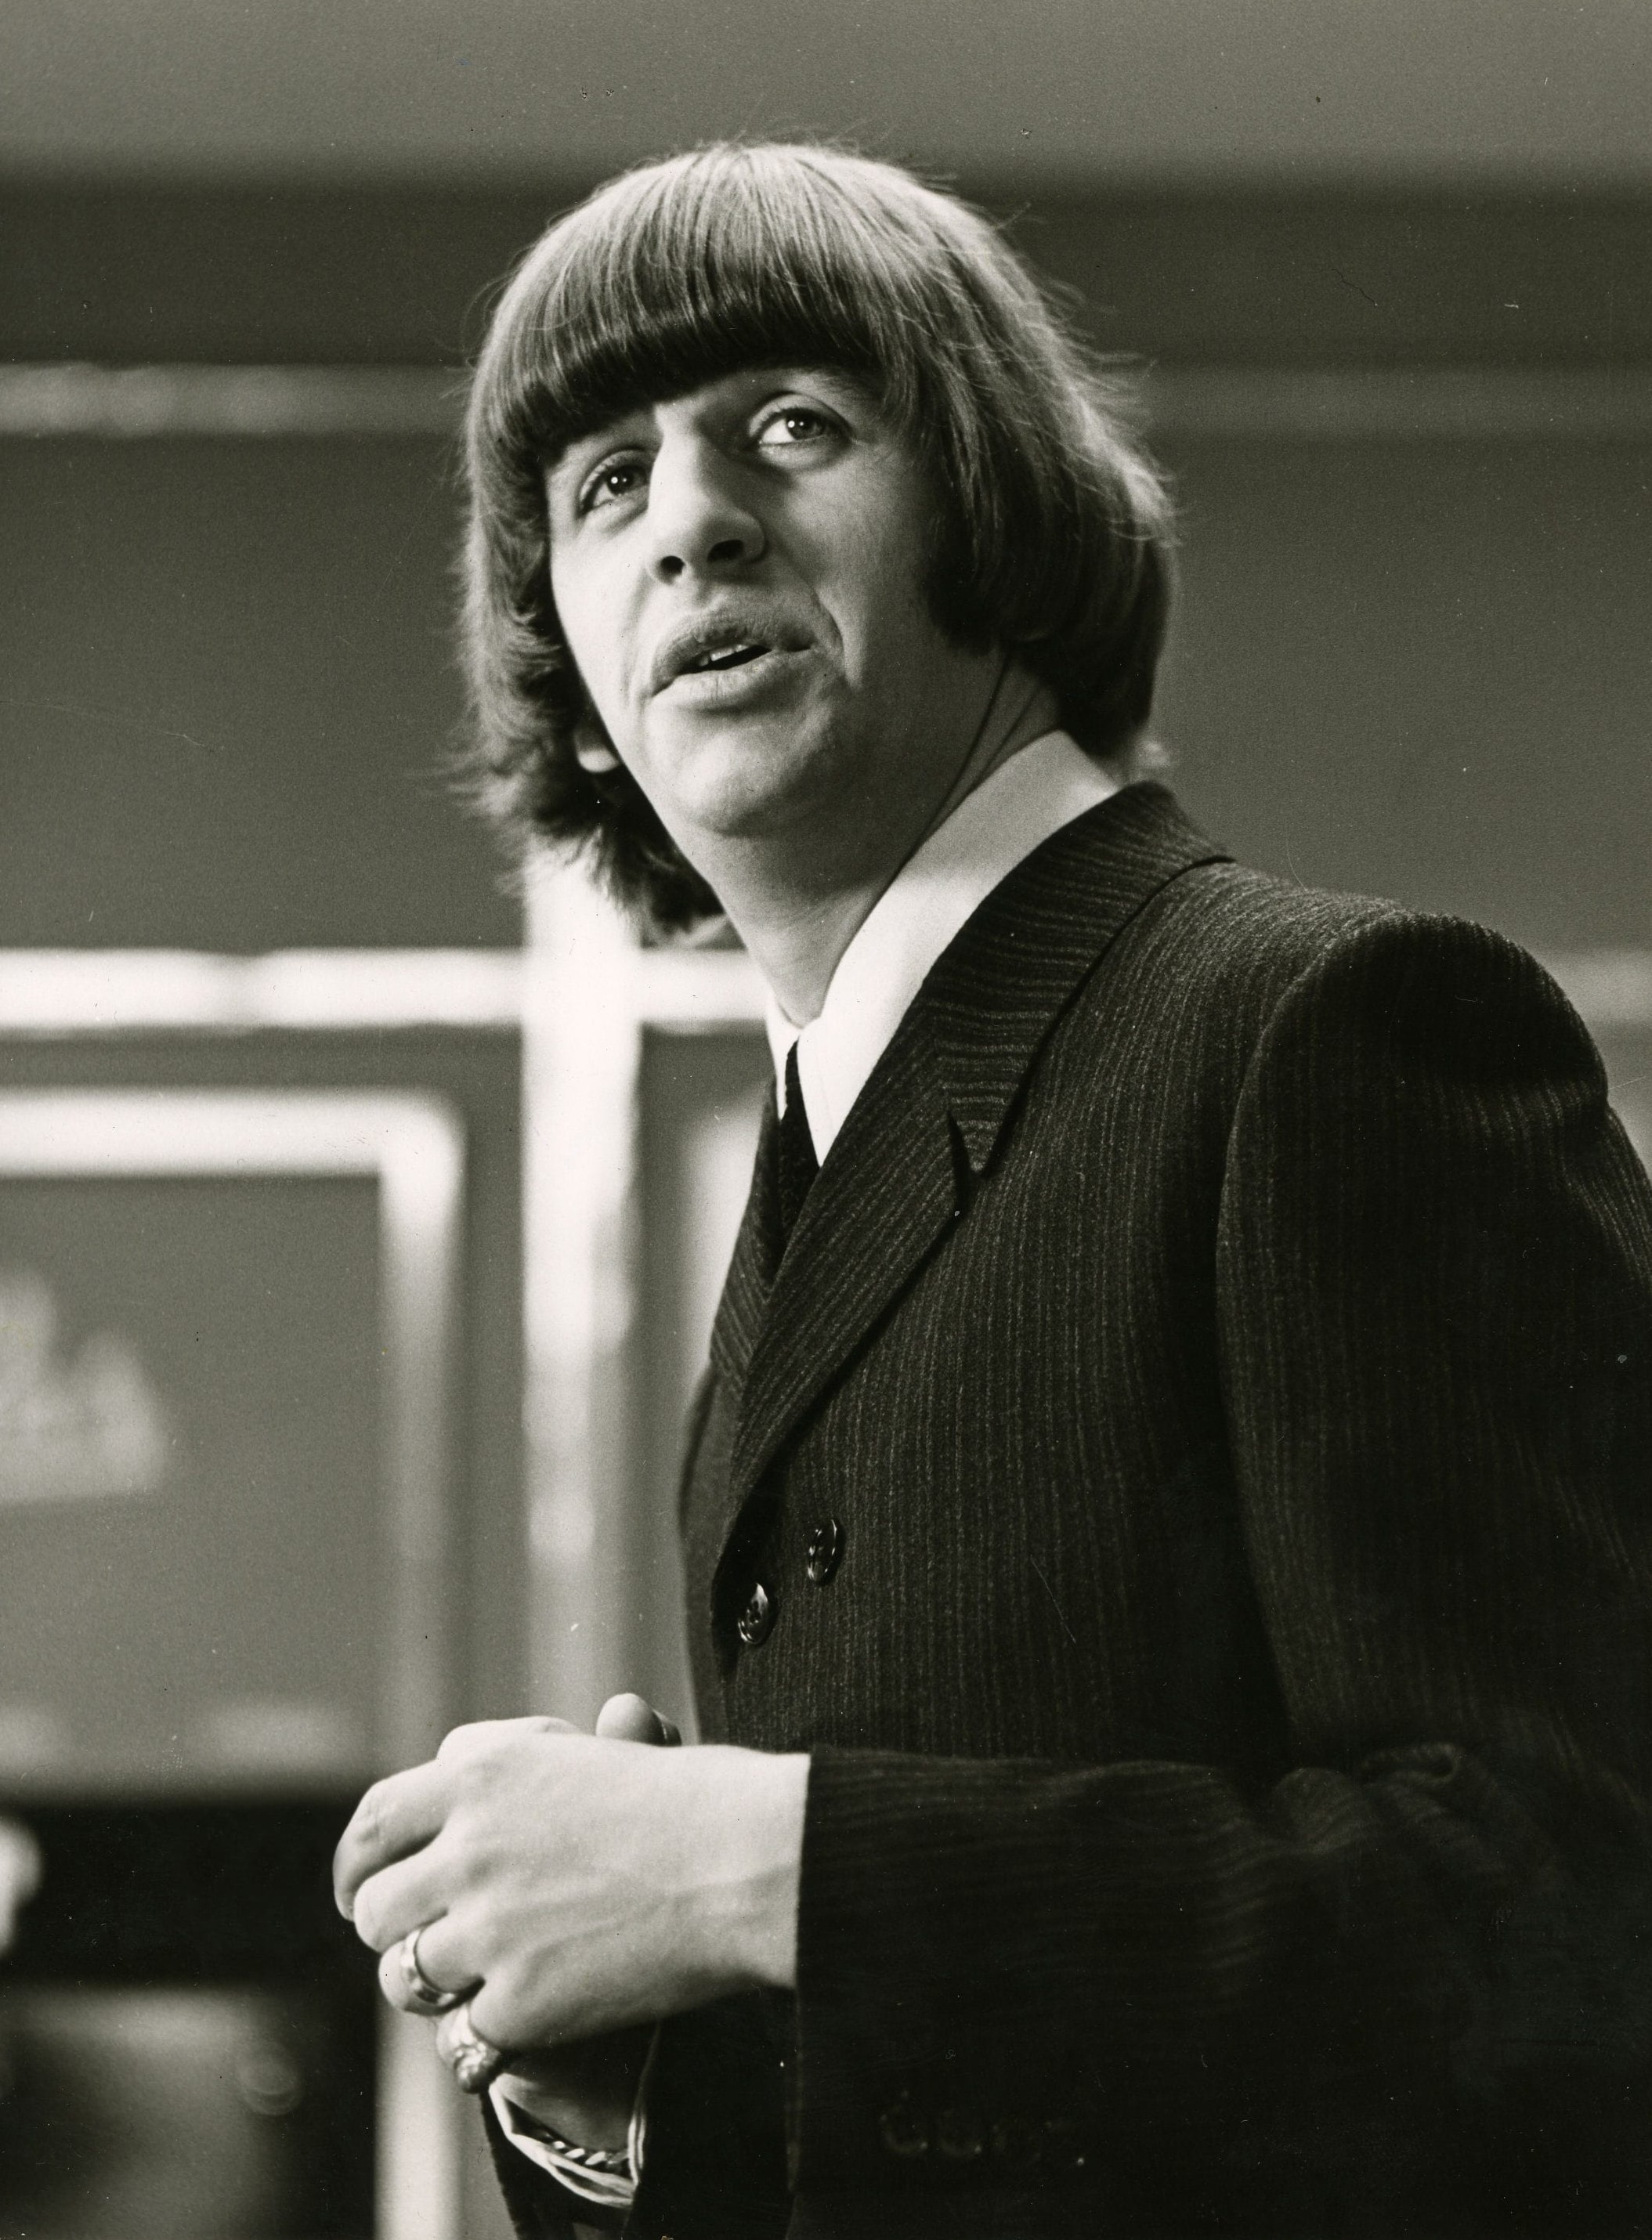 Ringo Starr Was The Drummer For Beatles From 1962 Until Bands Dissolution In 1970